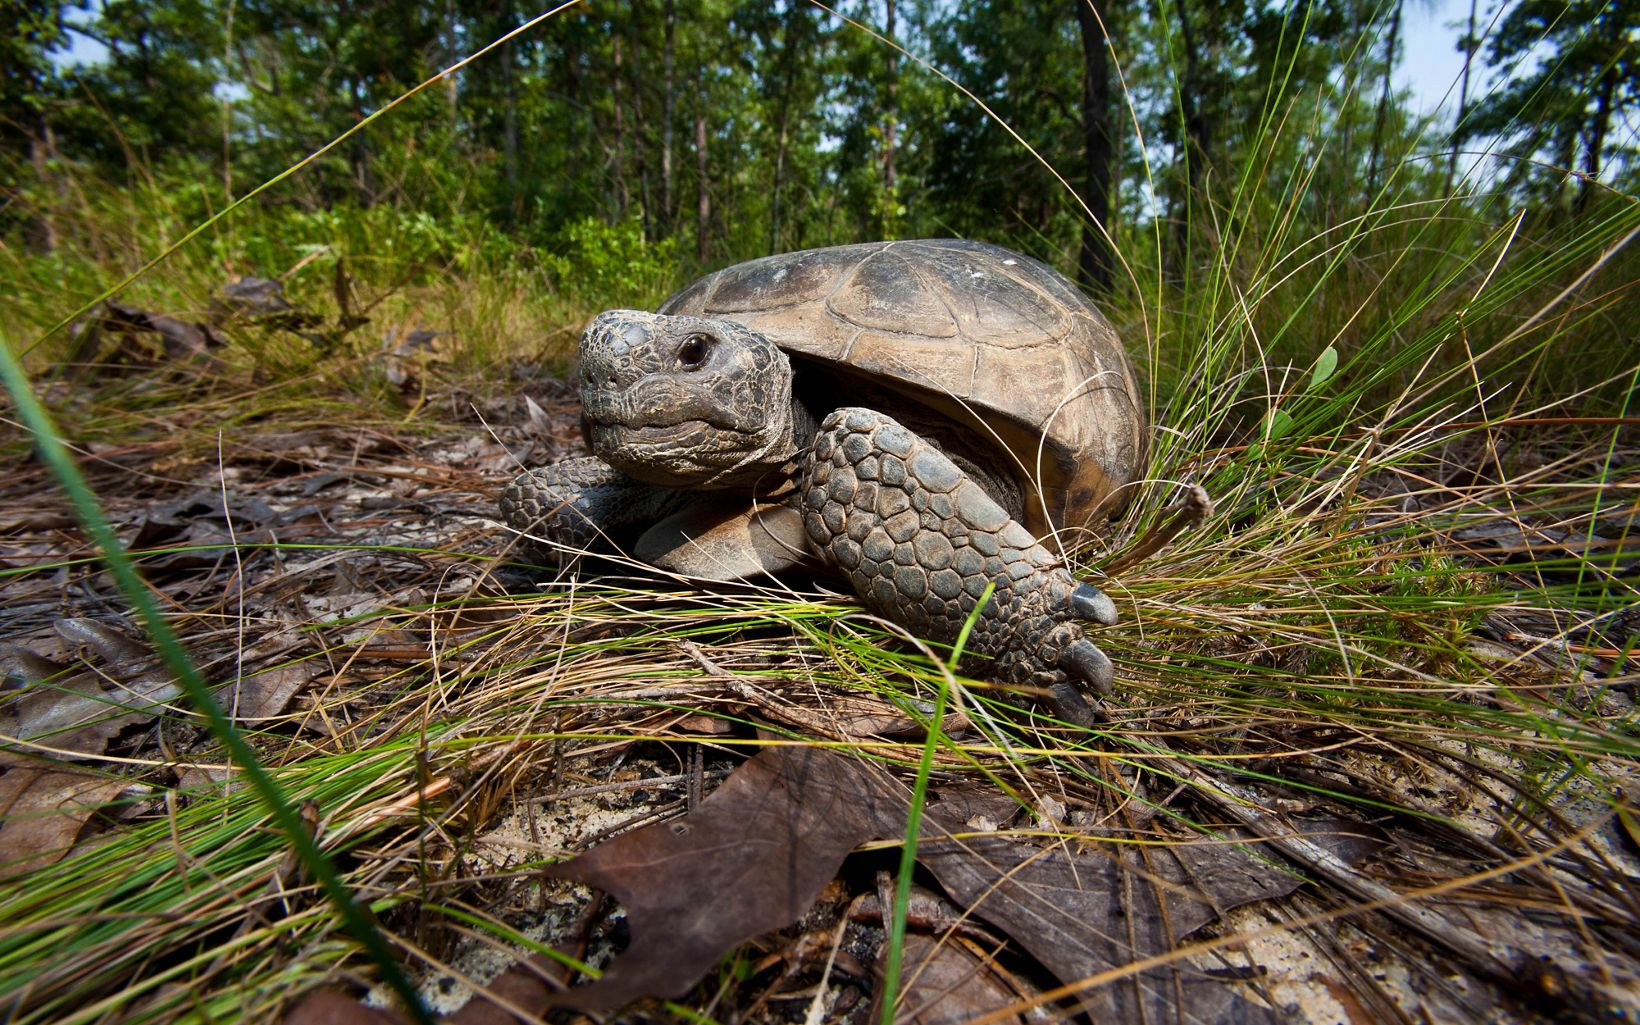 A gopher tortoise walking towards the camera through grass.